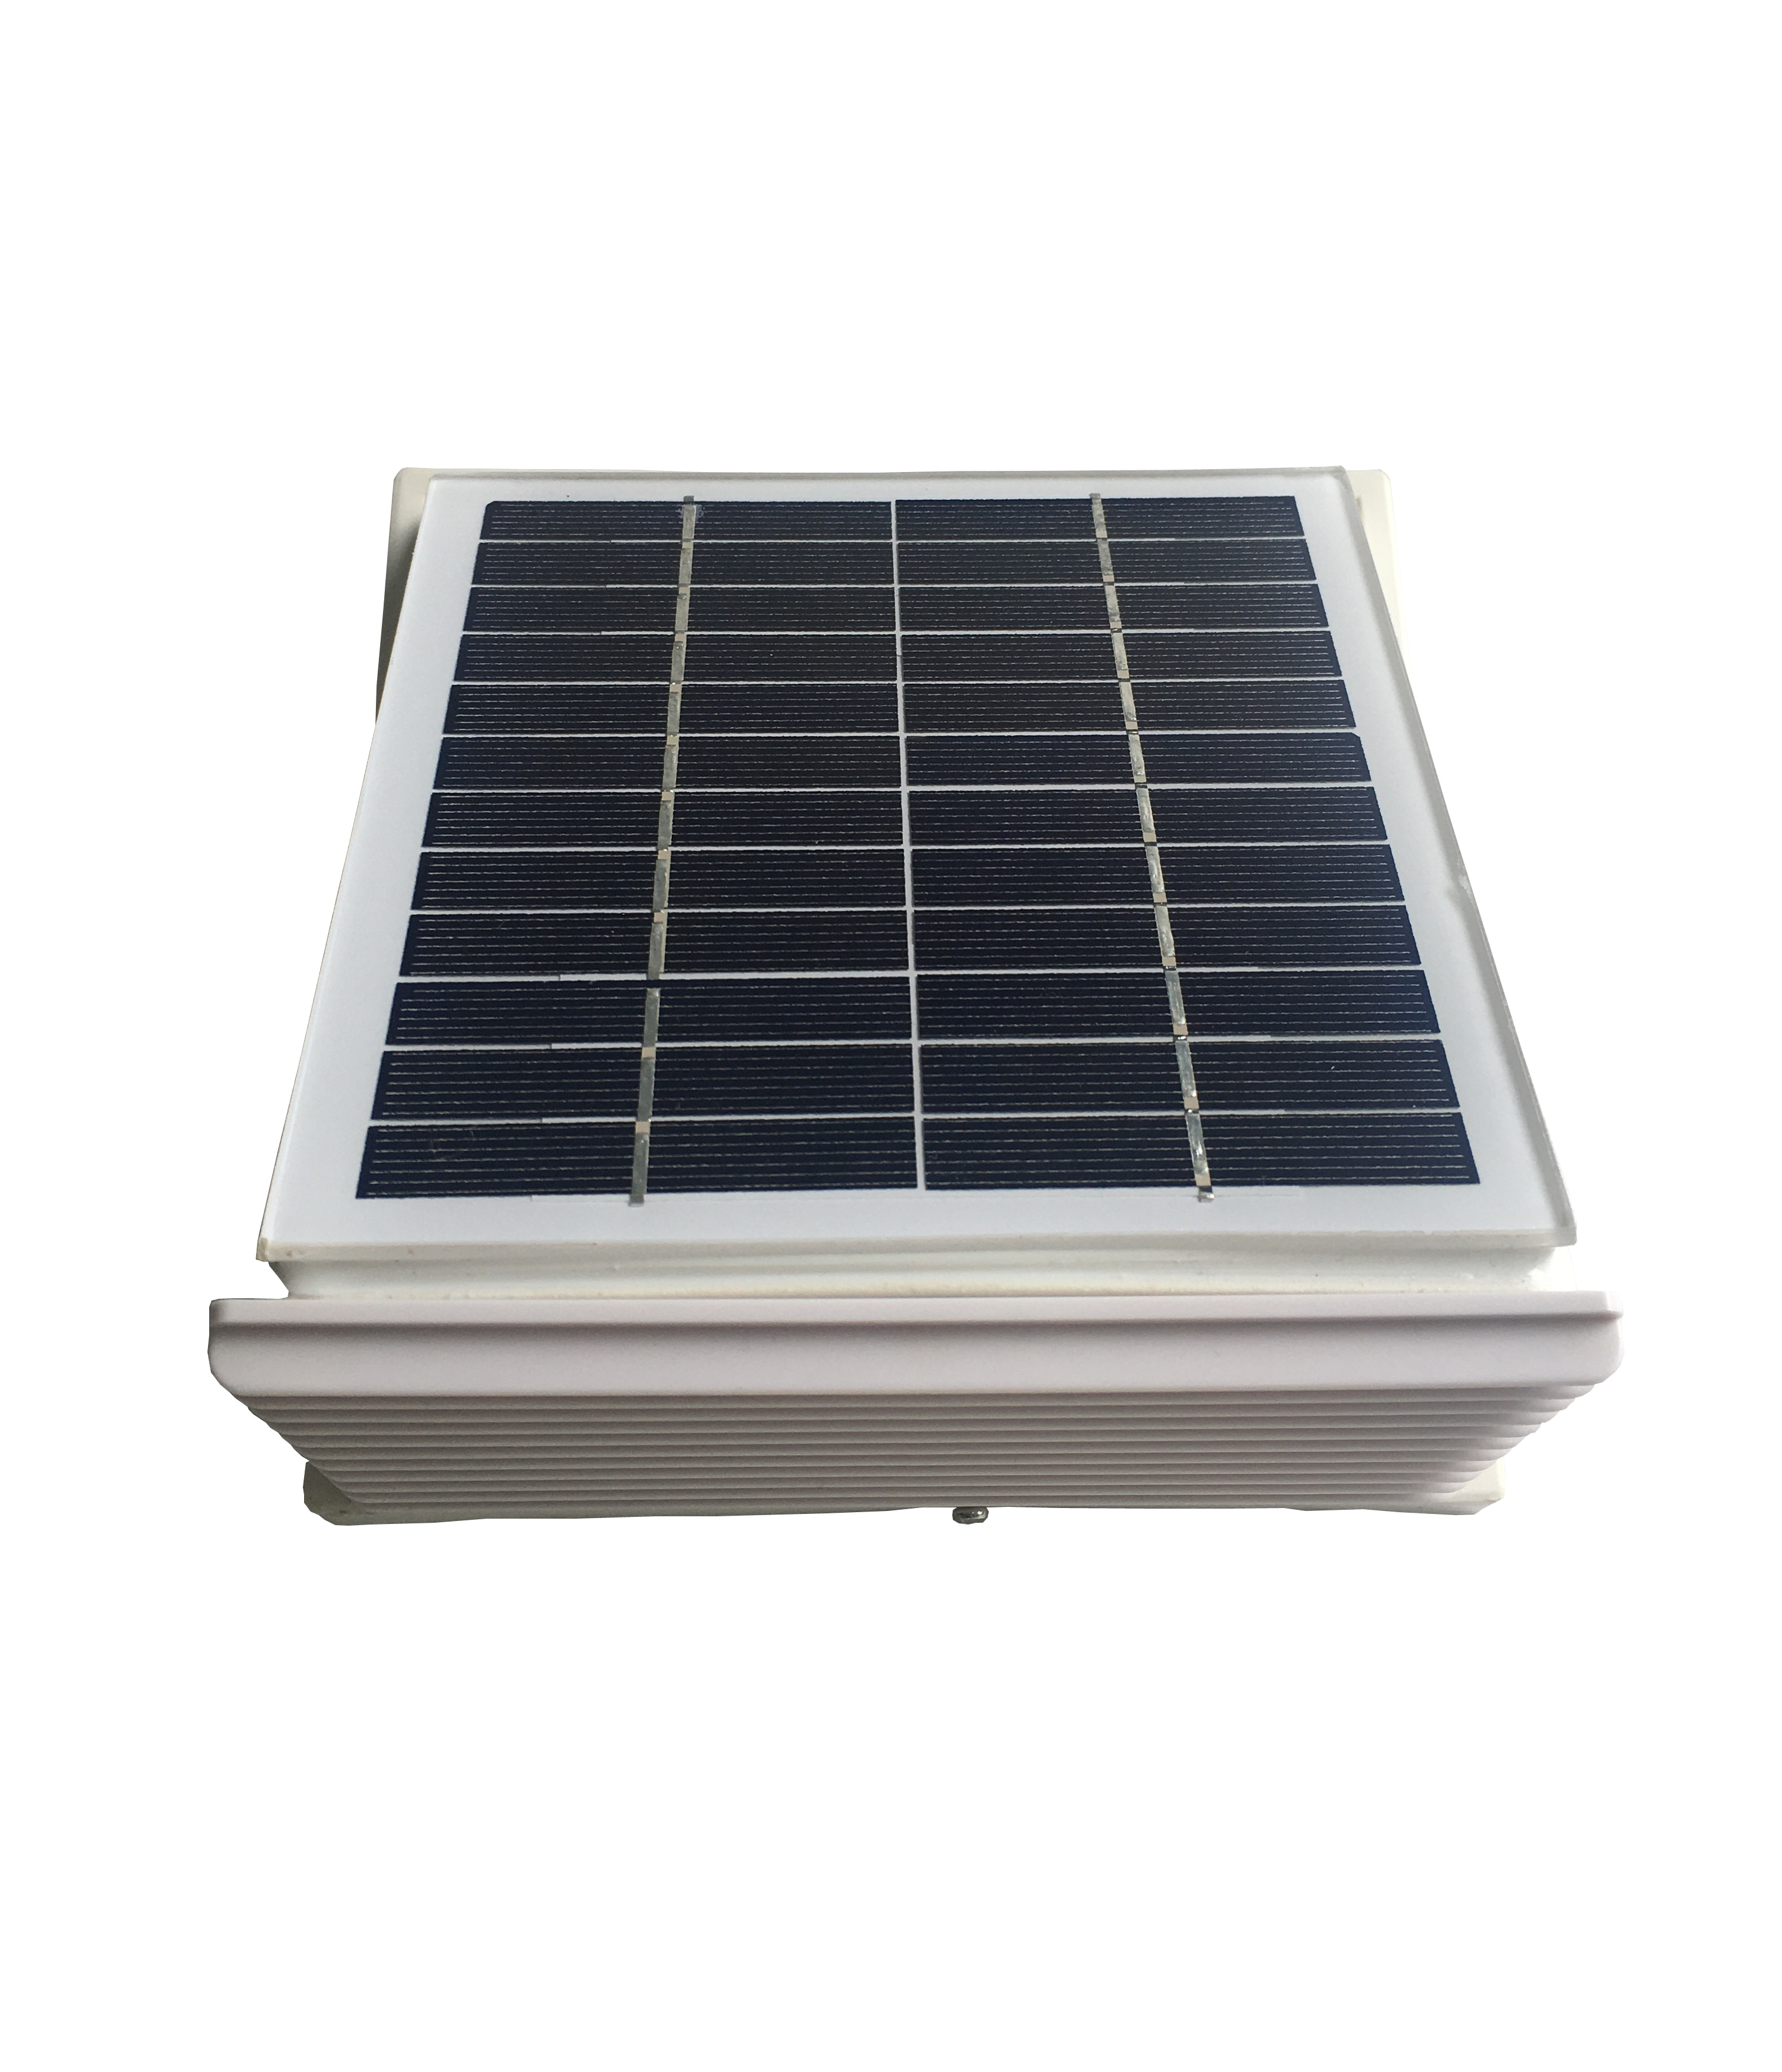 68cfm ABS Plastic SOLAR WALL FAN VENTILATOR EXTRACTOR  100mm  for shed RVs, greenhouses, vans, homes,